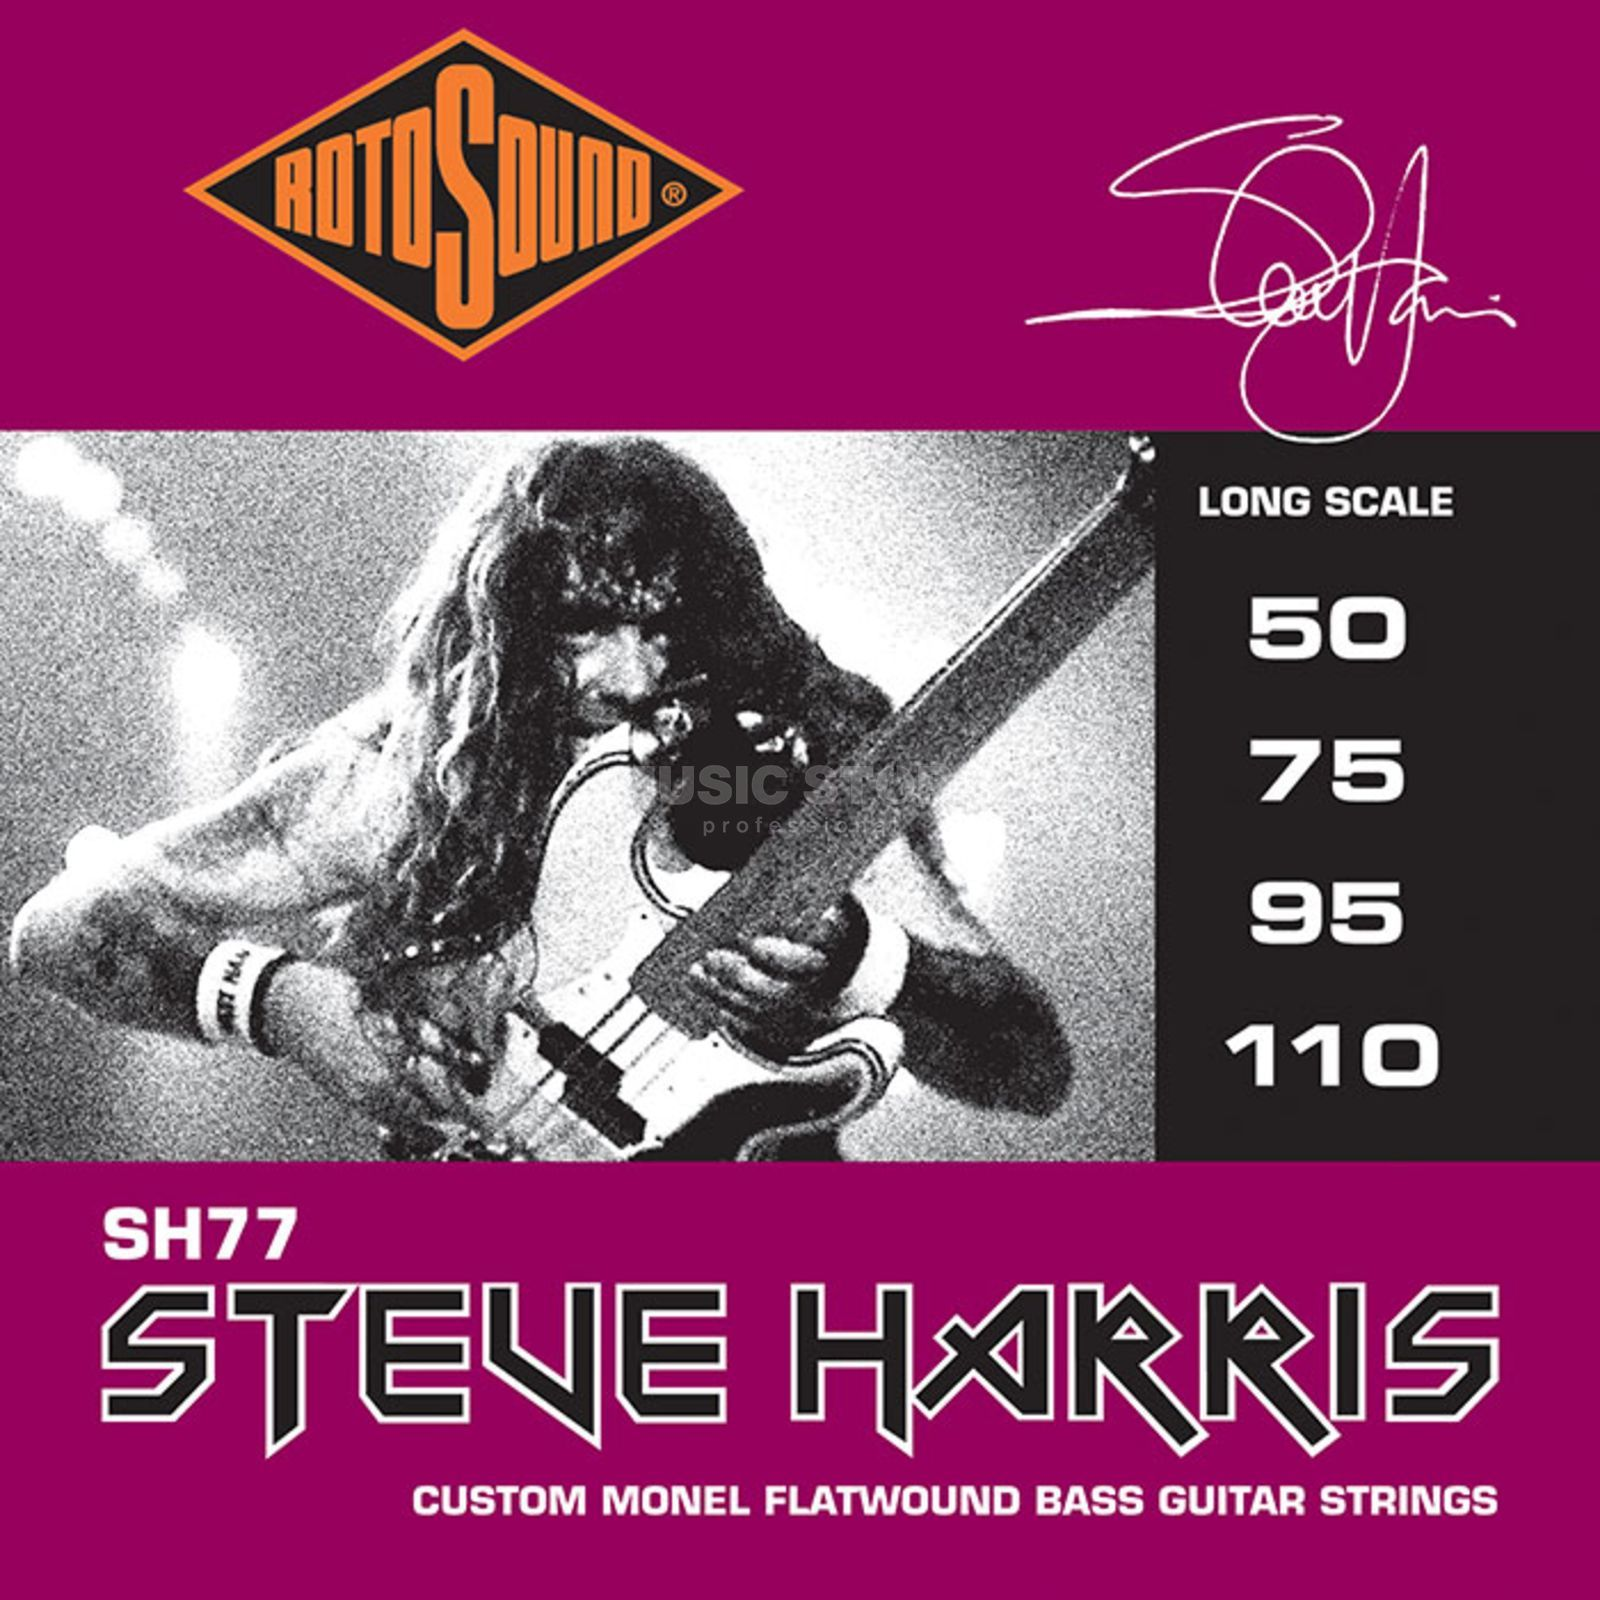 Rotosound Bass Strings SH77, 50-110, Flat Steve Harris, Monel Flatwound Produktbillede